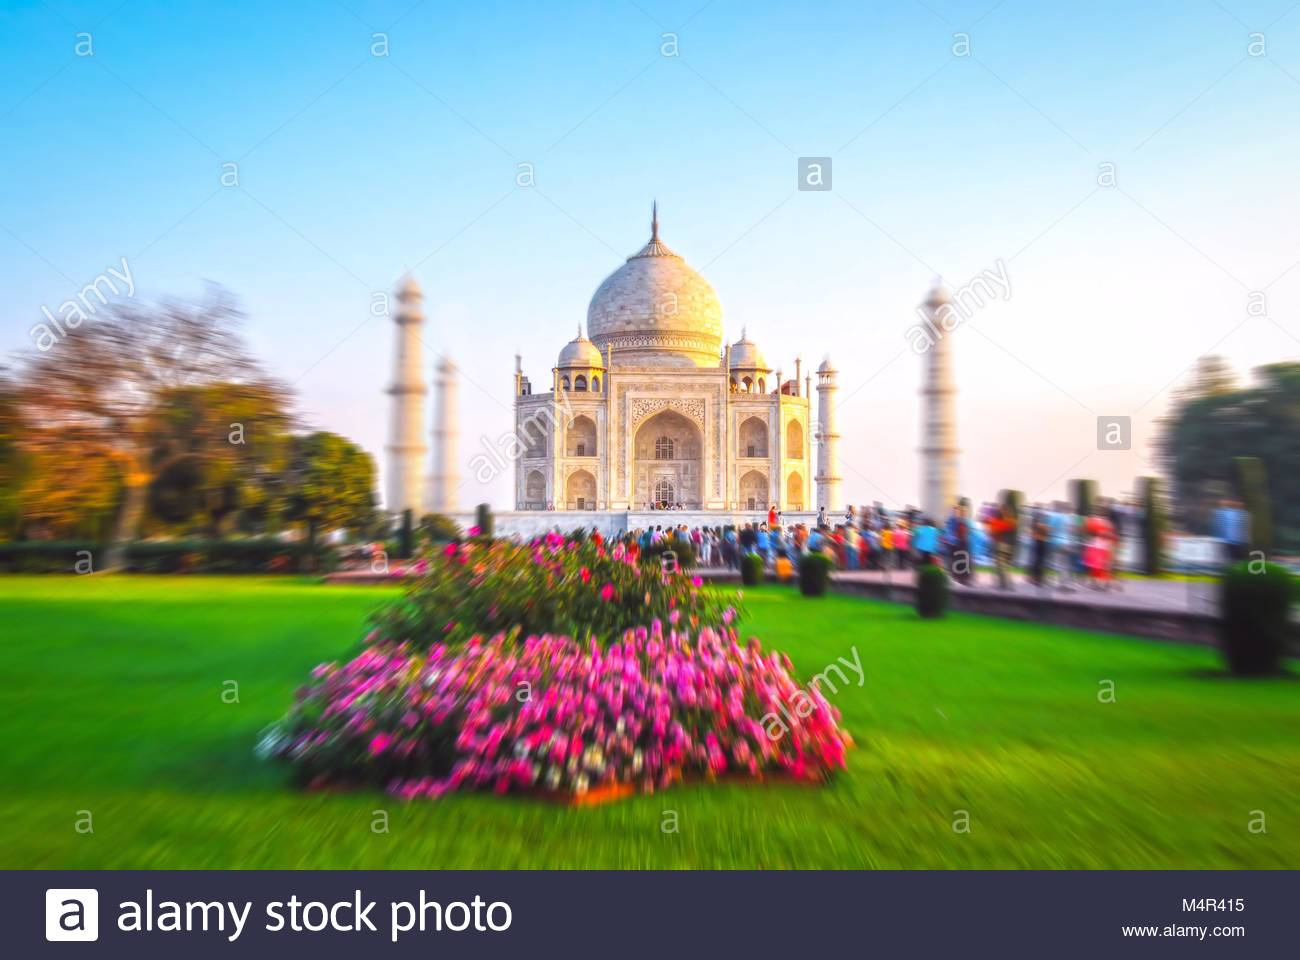 The Taj Mahal is an ivory-white marble mausoleum on the south bank of the Yamuna river in the Indian city of Agra. - Stock Image